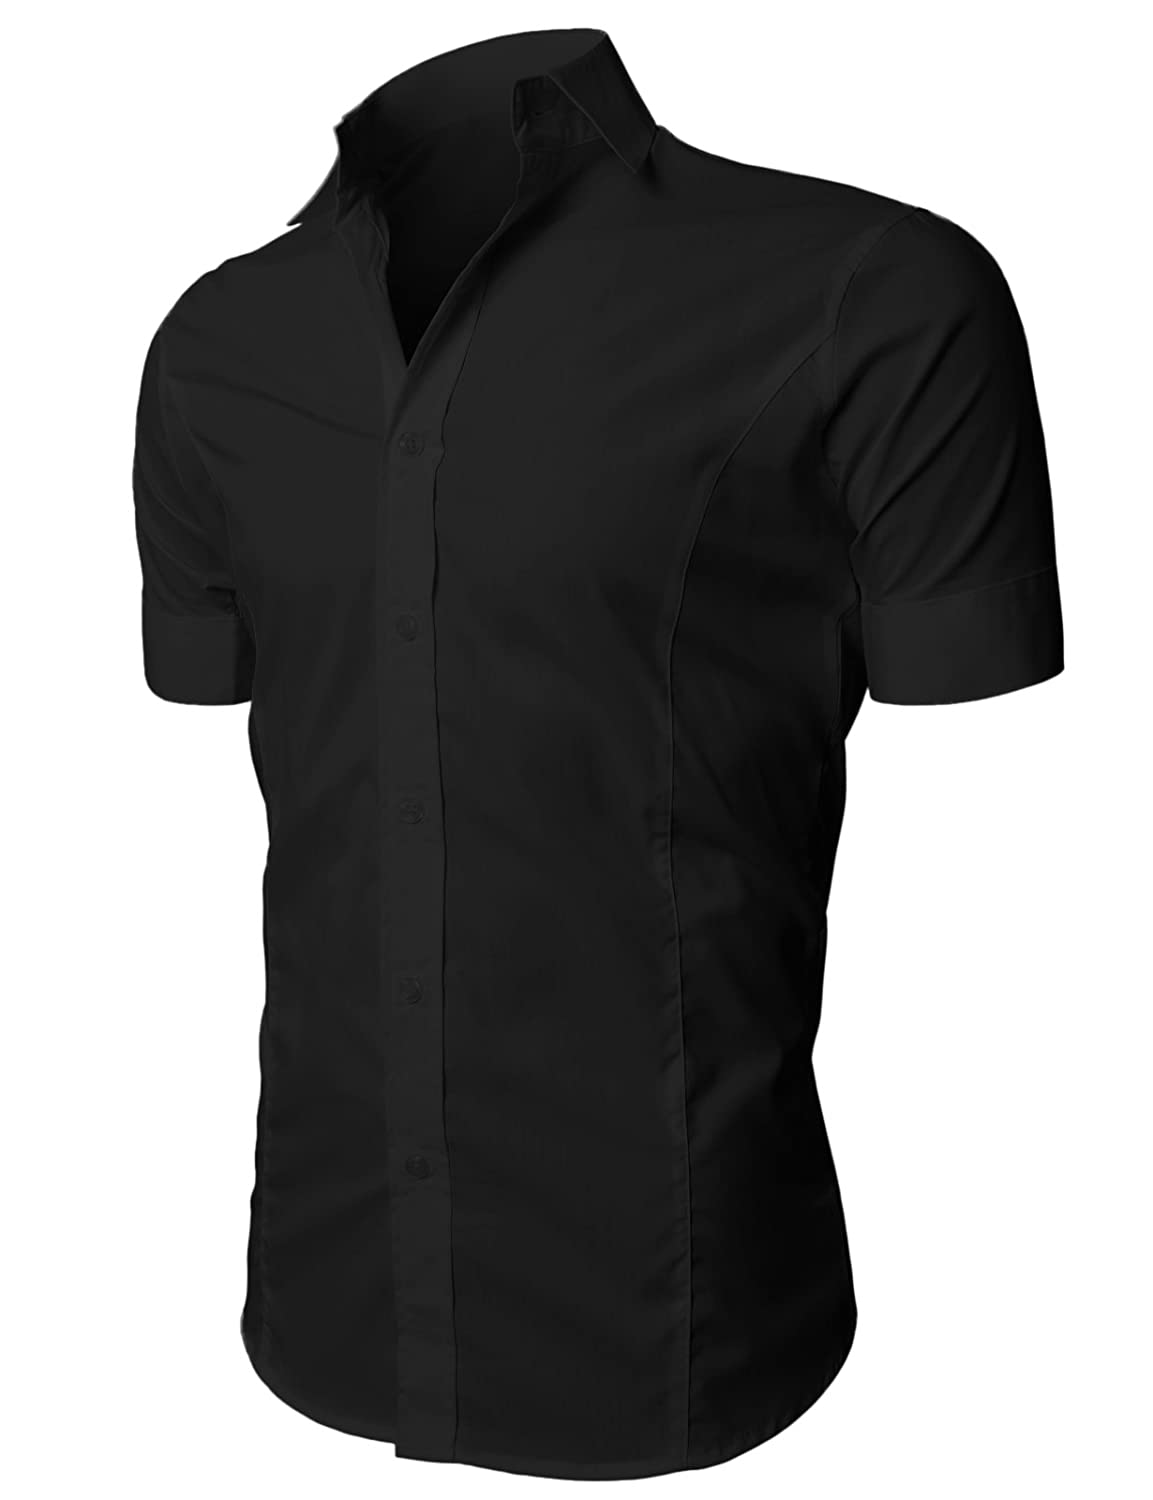 H2H Men's Wrinkle Free Slim Fit Dress Shirts at Amazon Men�s Clothing store